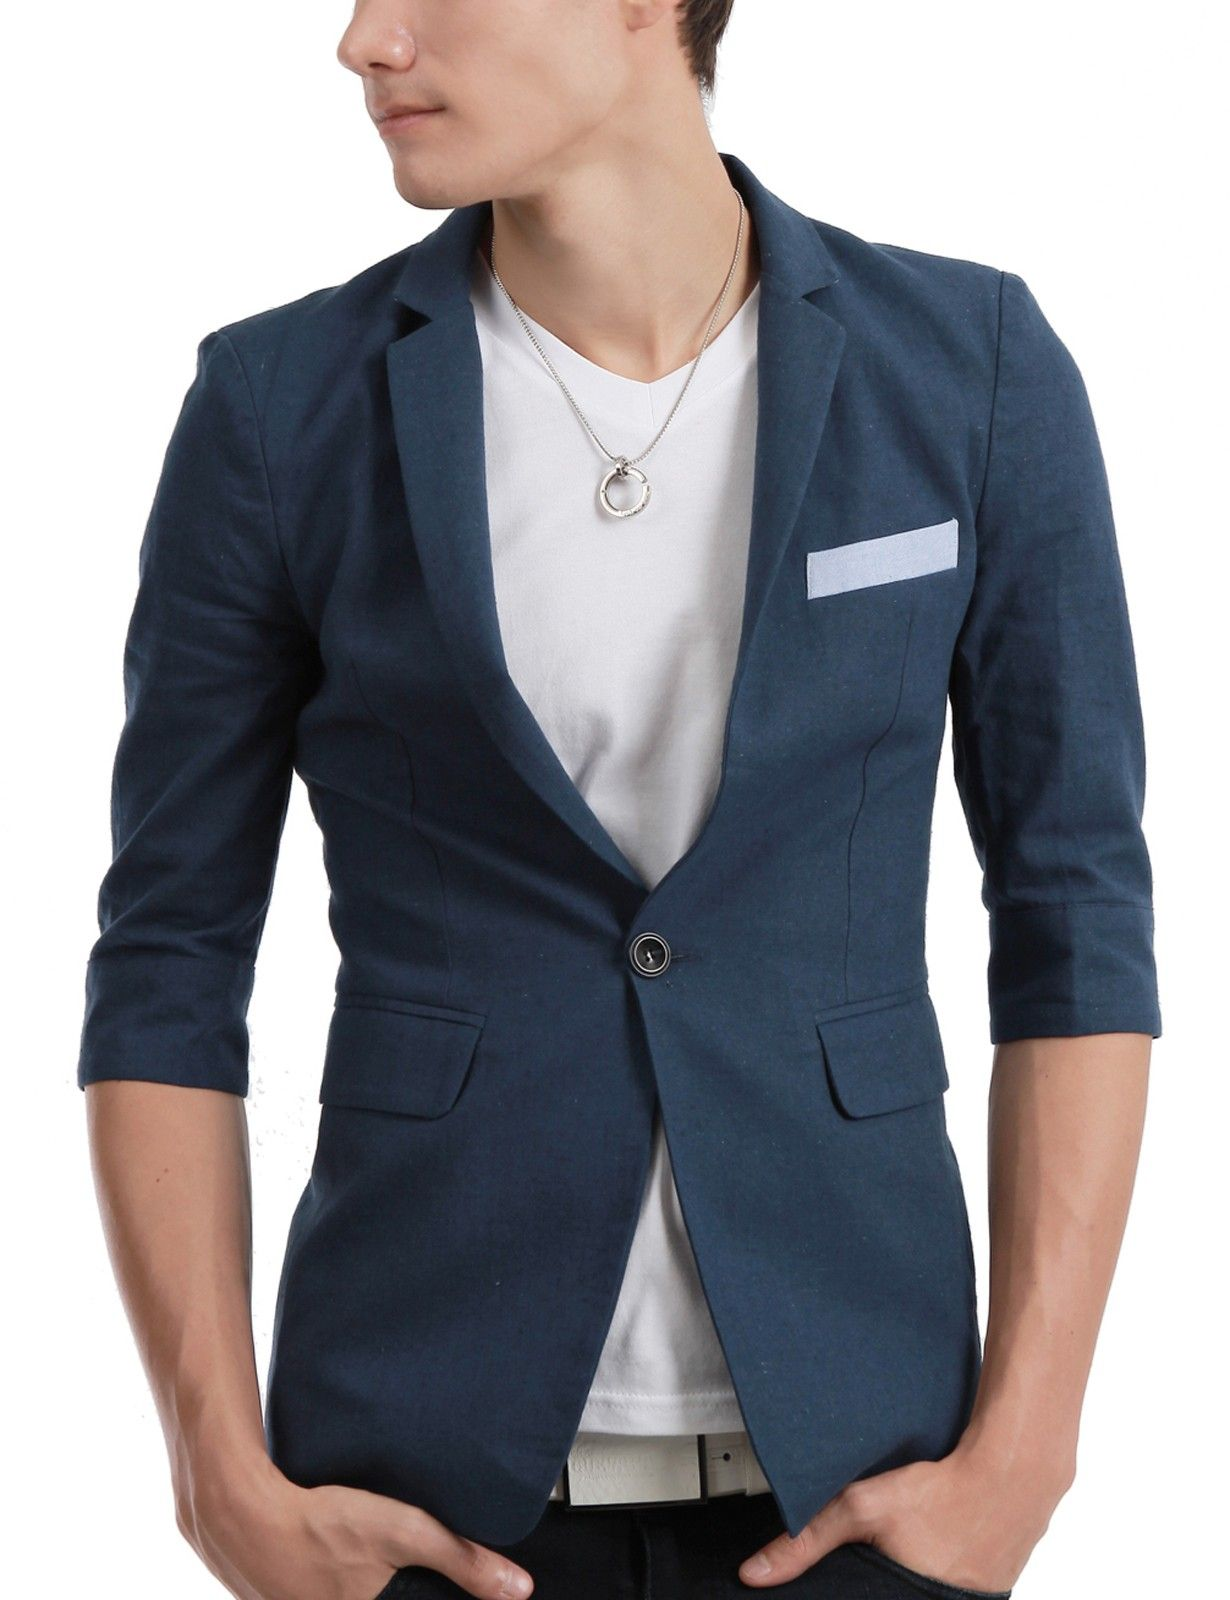 Mens Casual Onebutton Short Sleeve Blazer Jacket (091D) | Stuff to